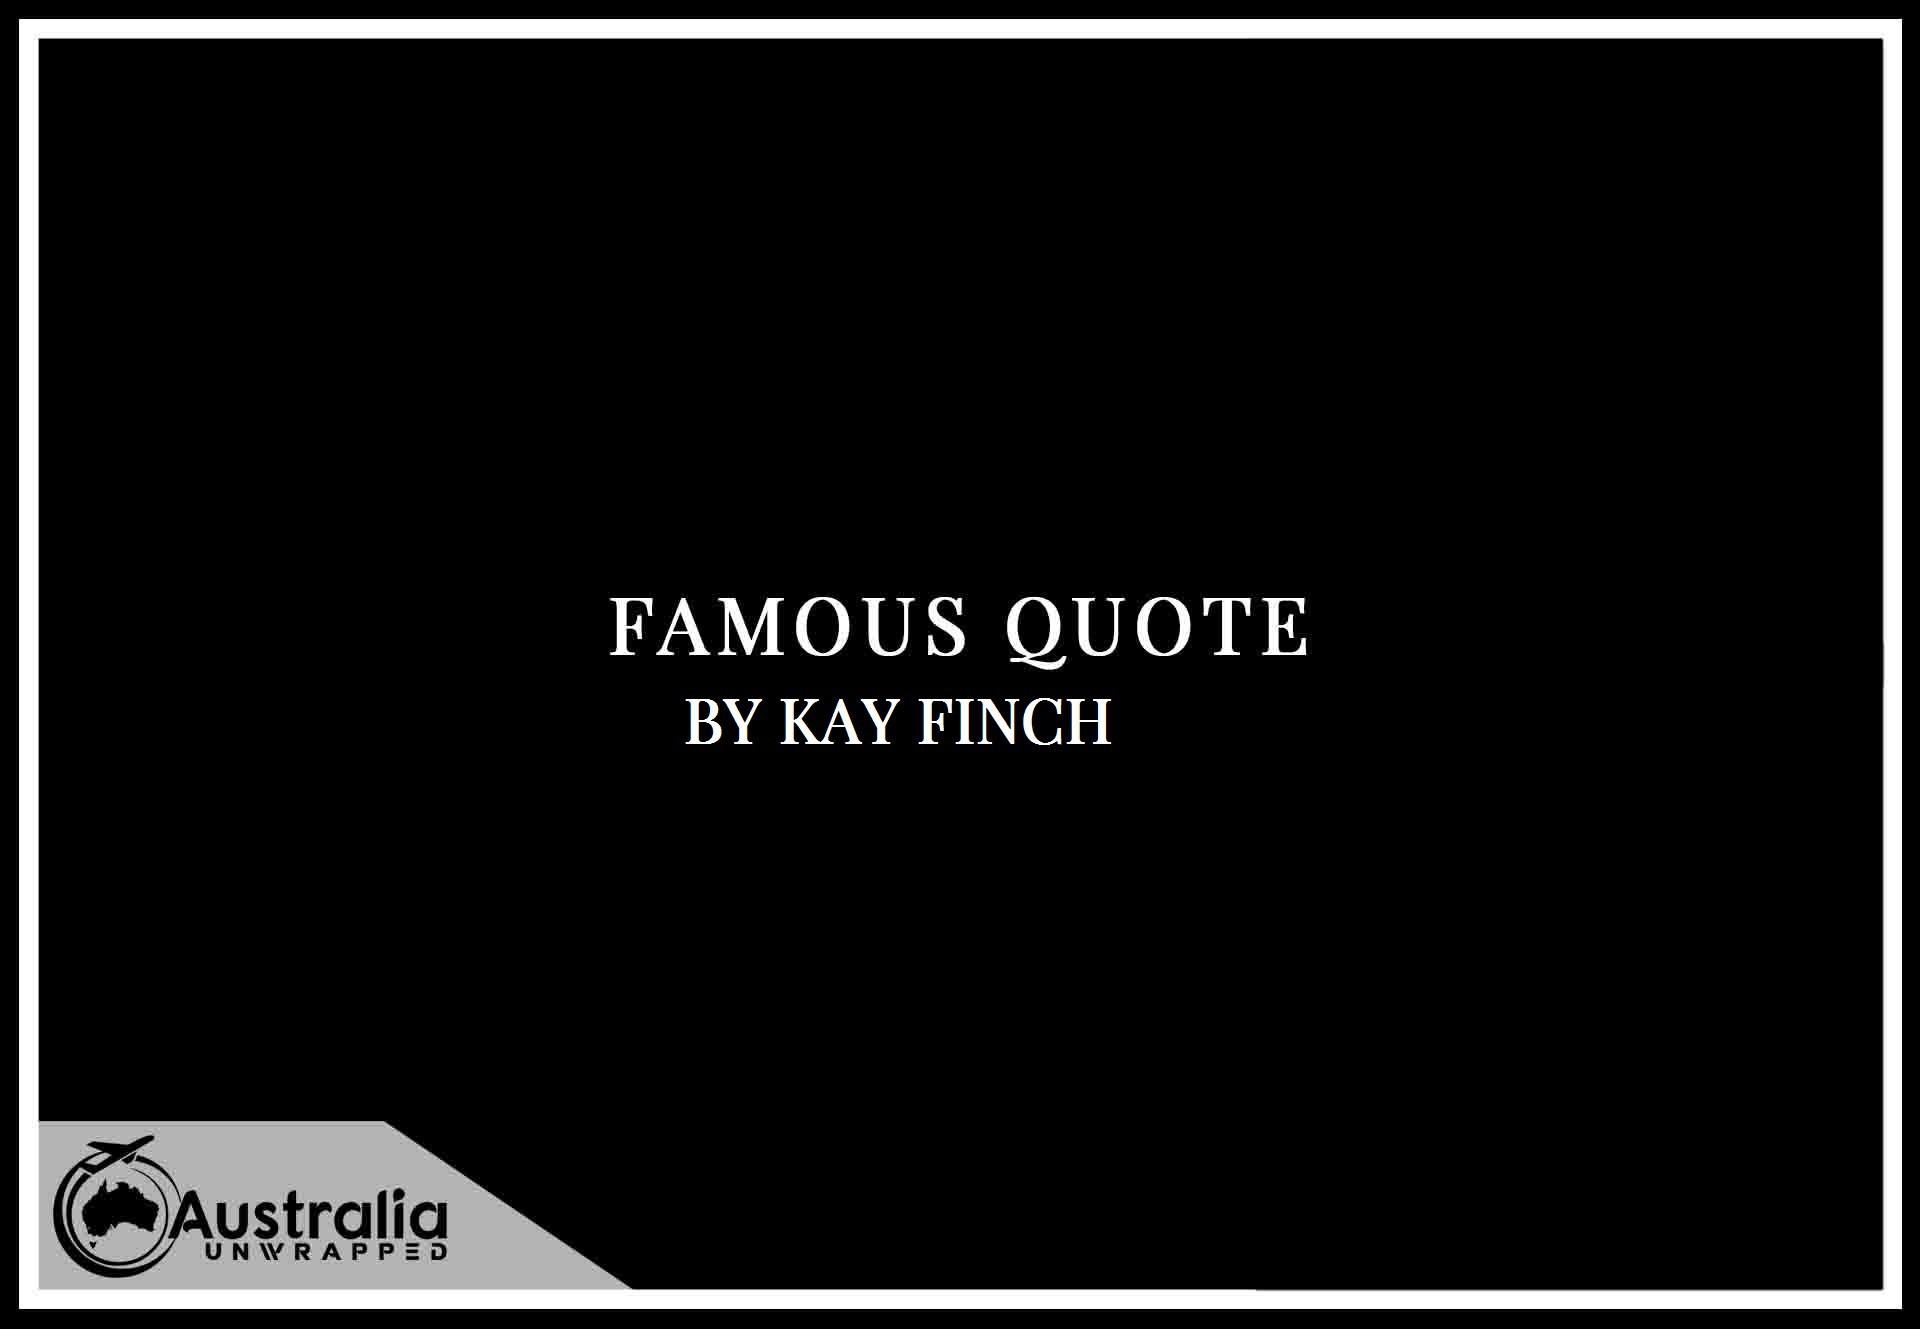 Kay Finch's Top 1 Popular and Famous Quotes